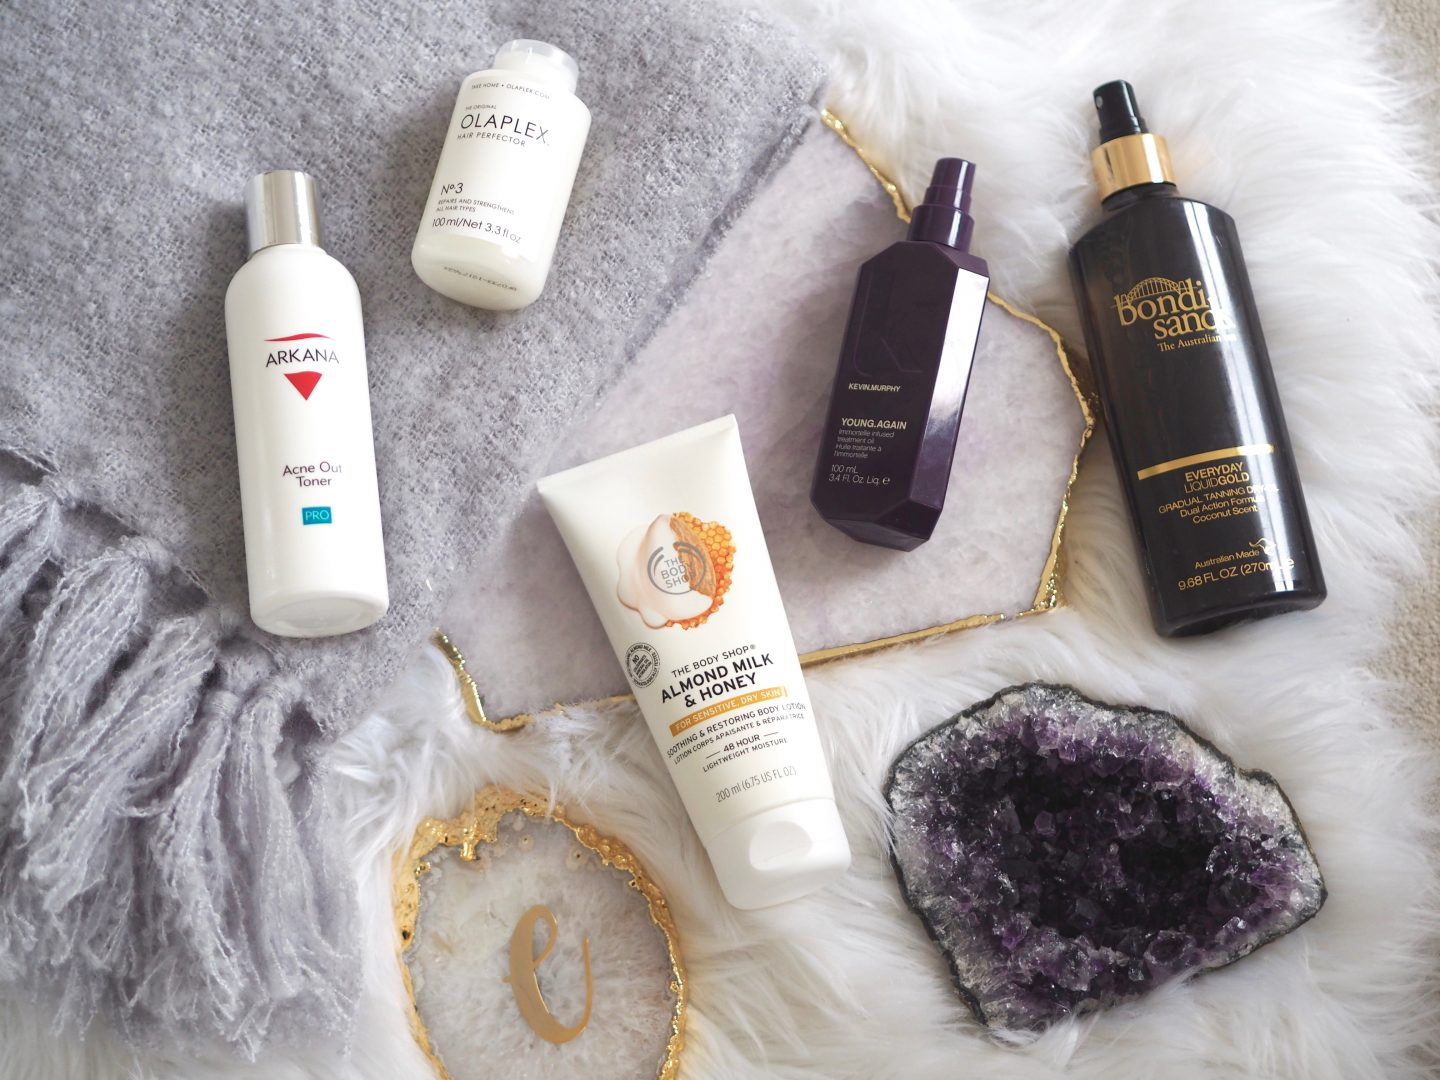 MY FIVE TOP BEAUTY PRODUCTS FOR WINTER